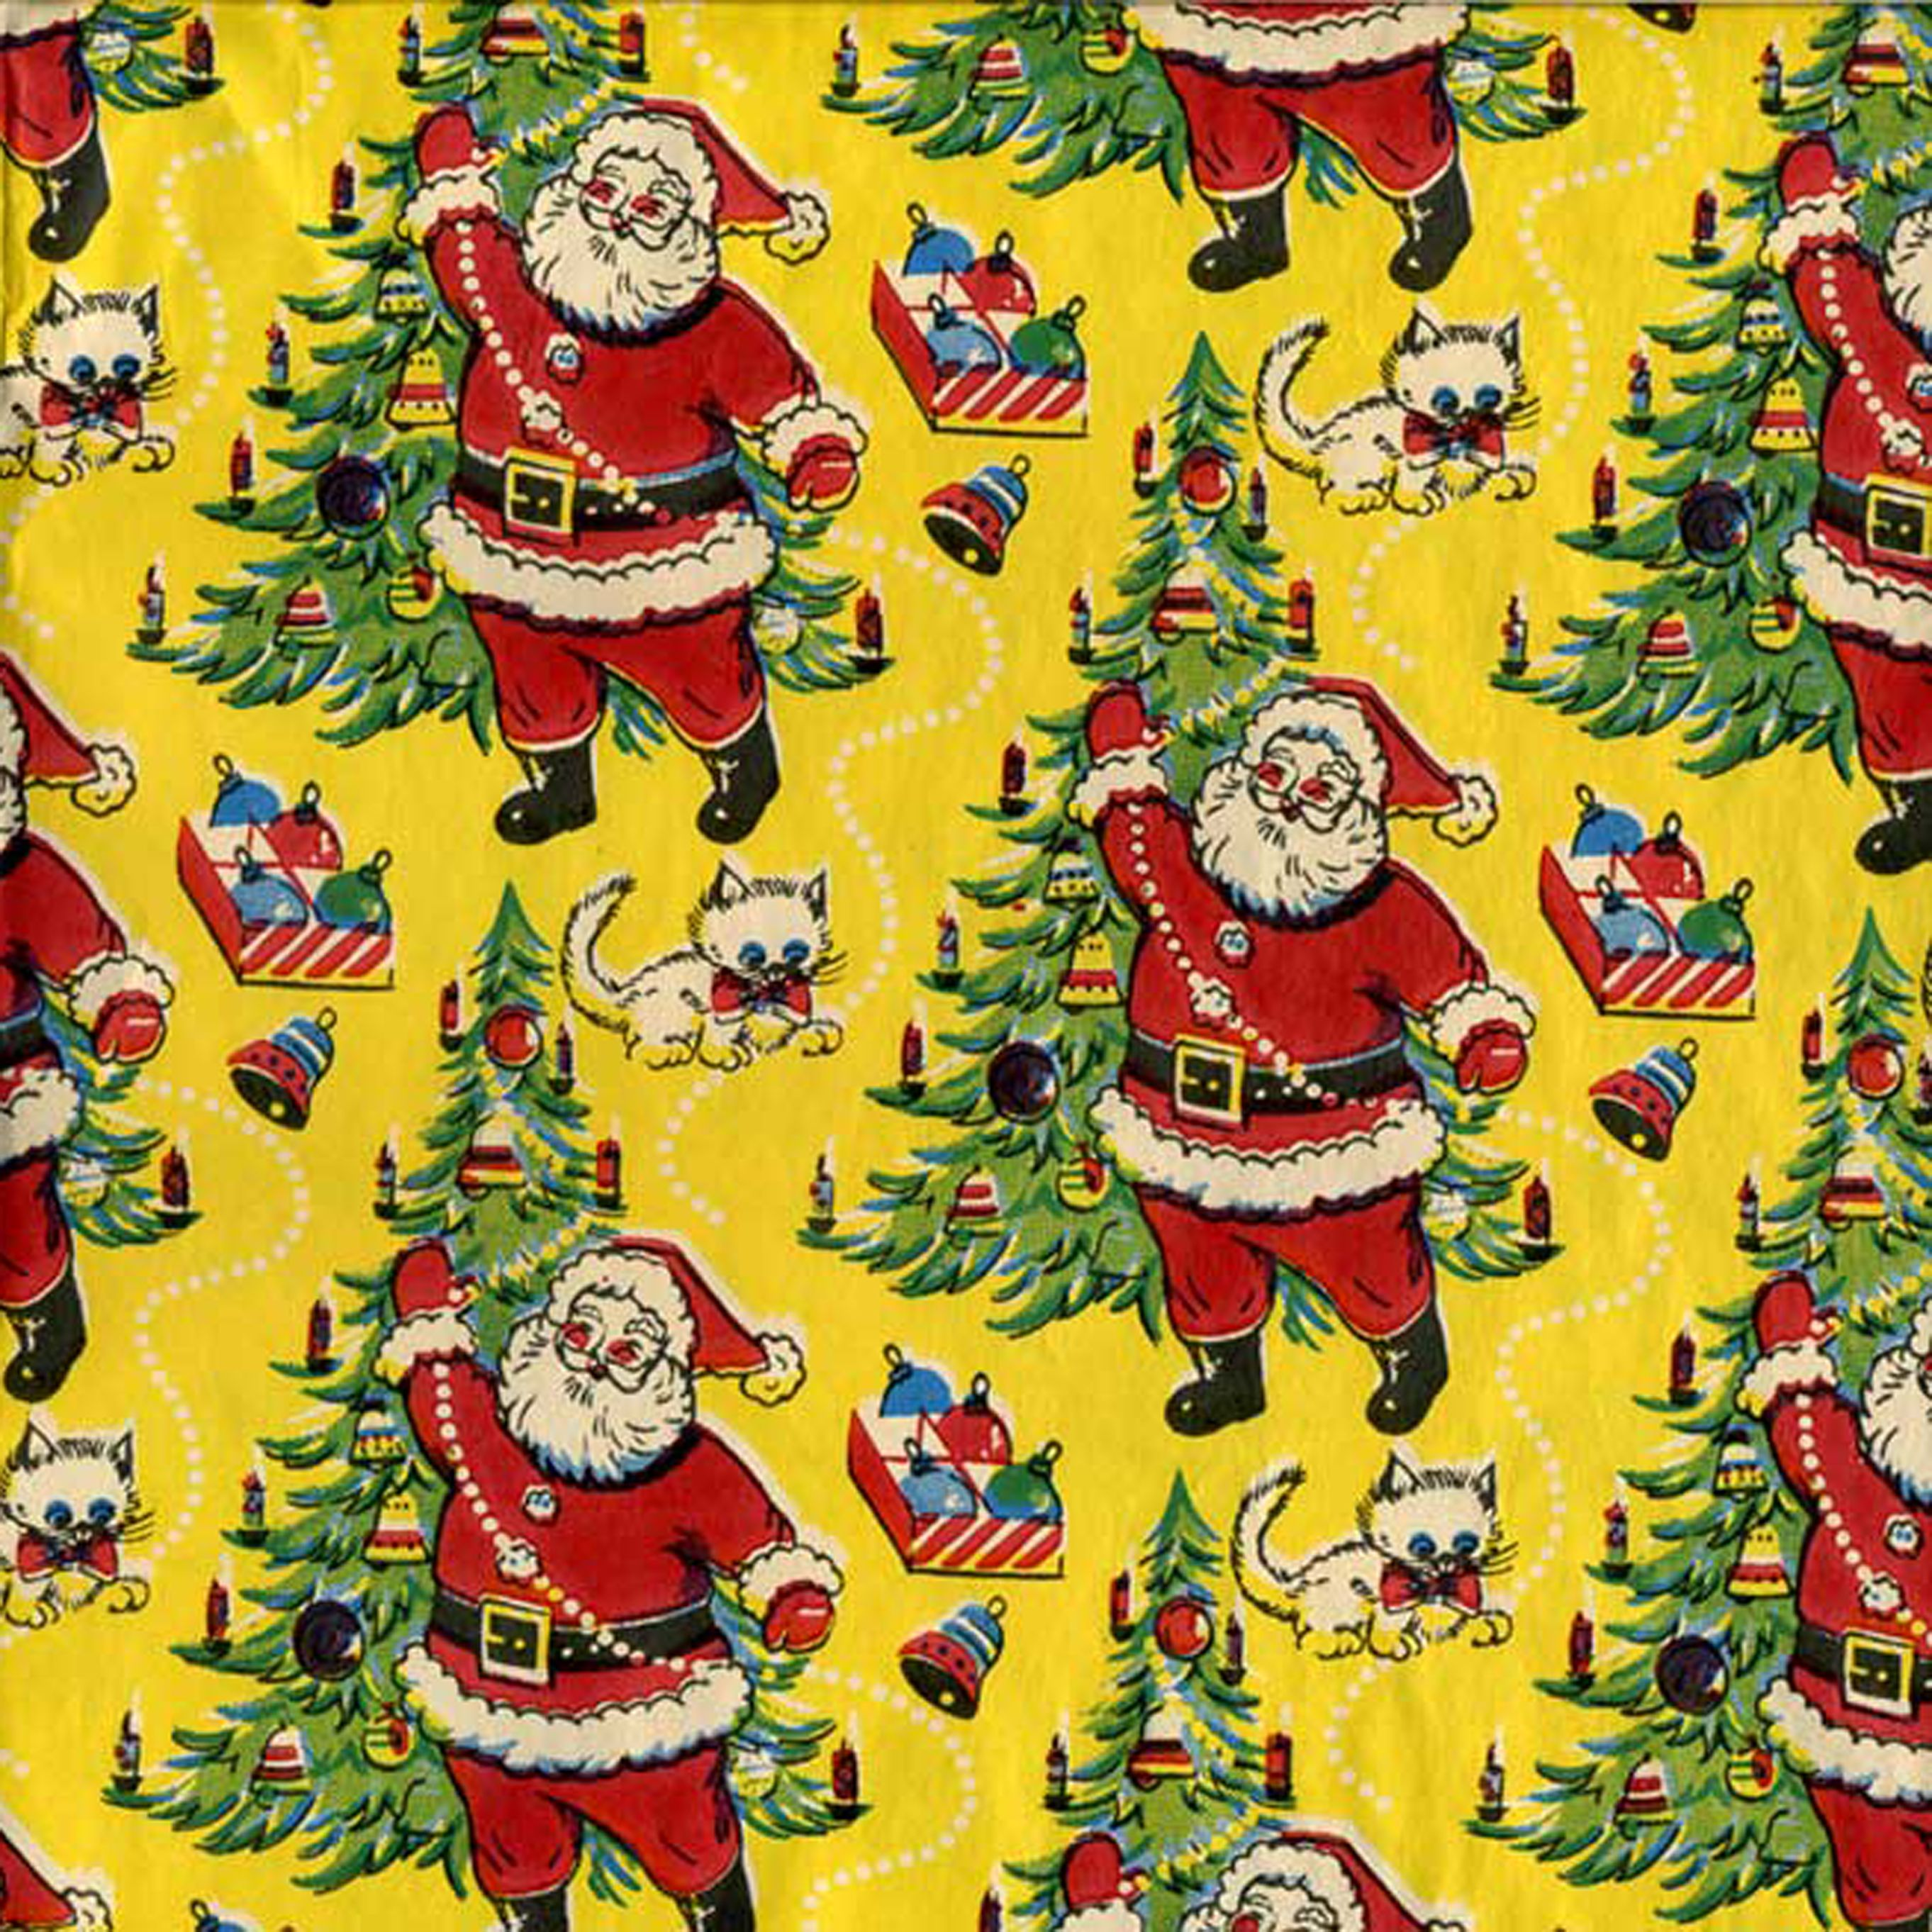 Vintage Christmas Wrapping Paper Nonna's Baby • The